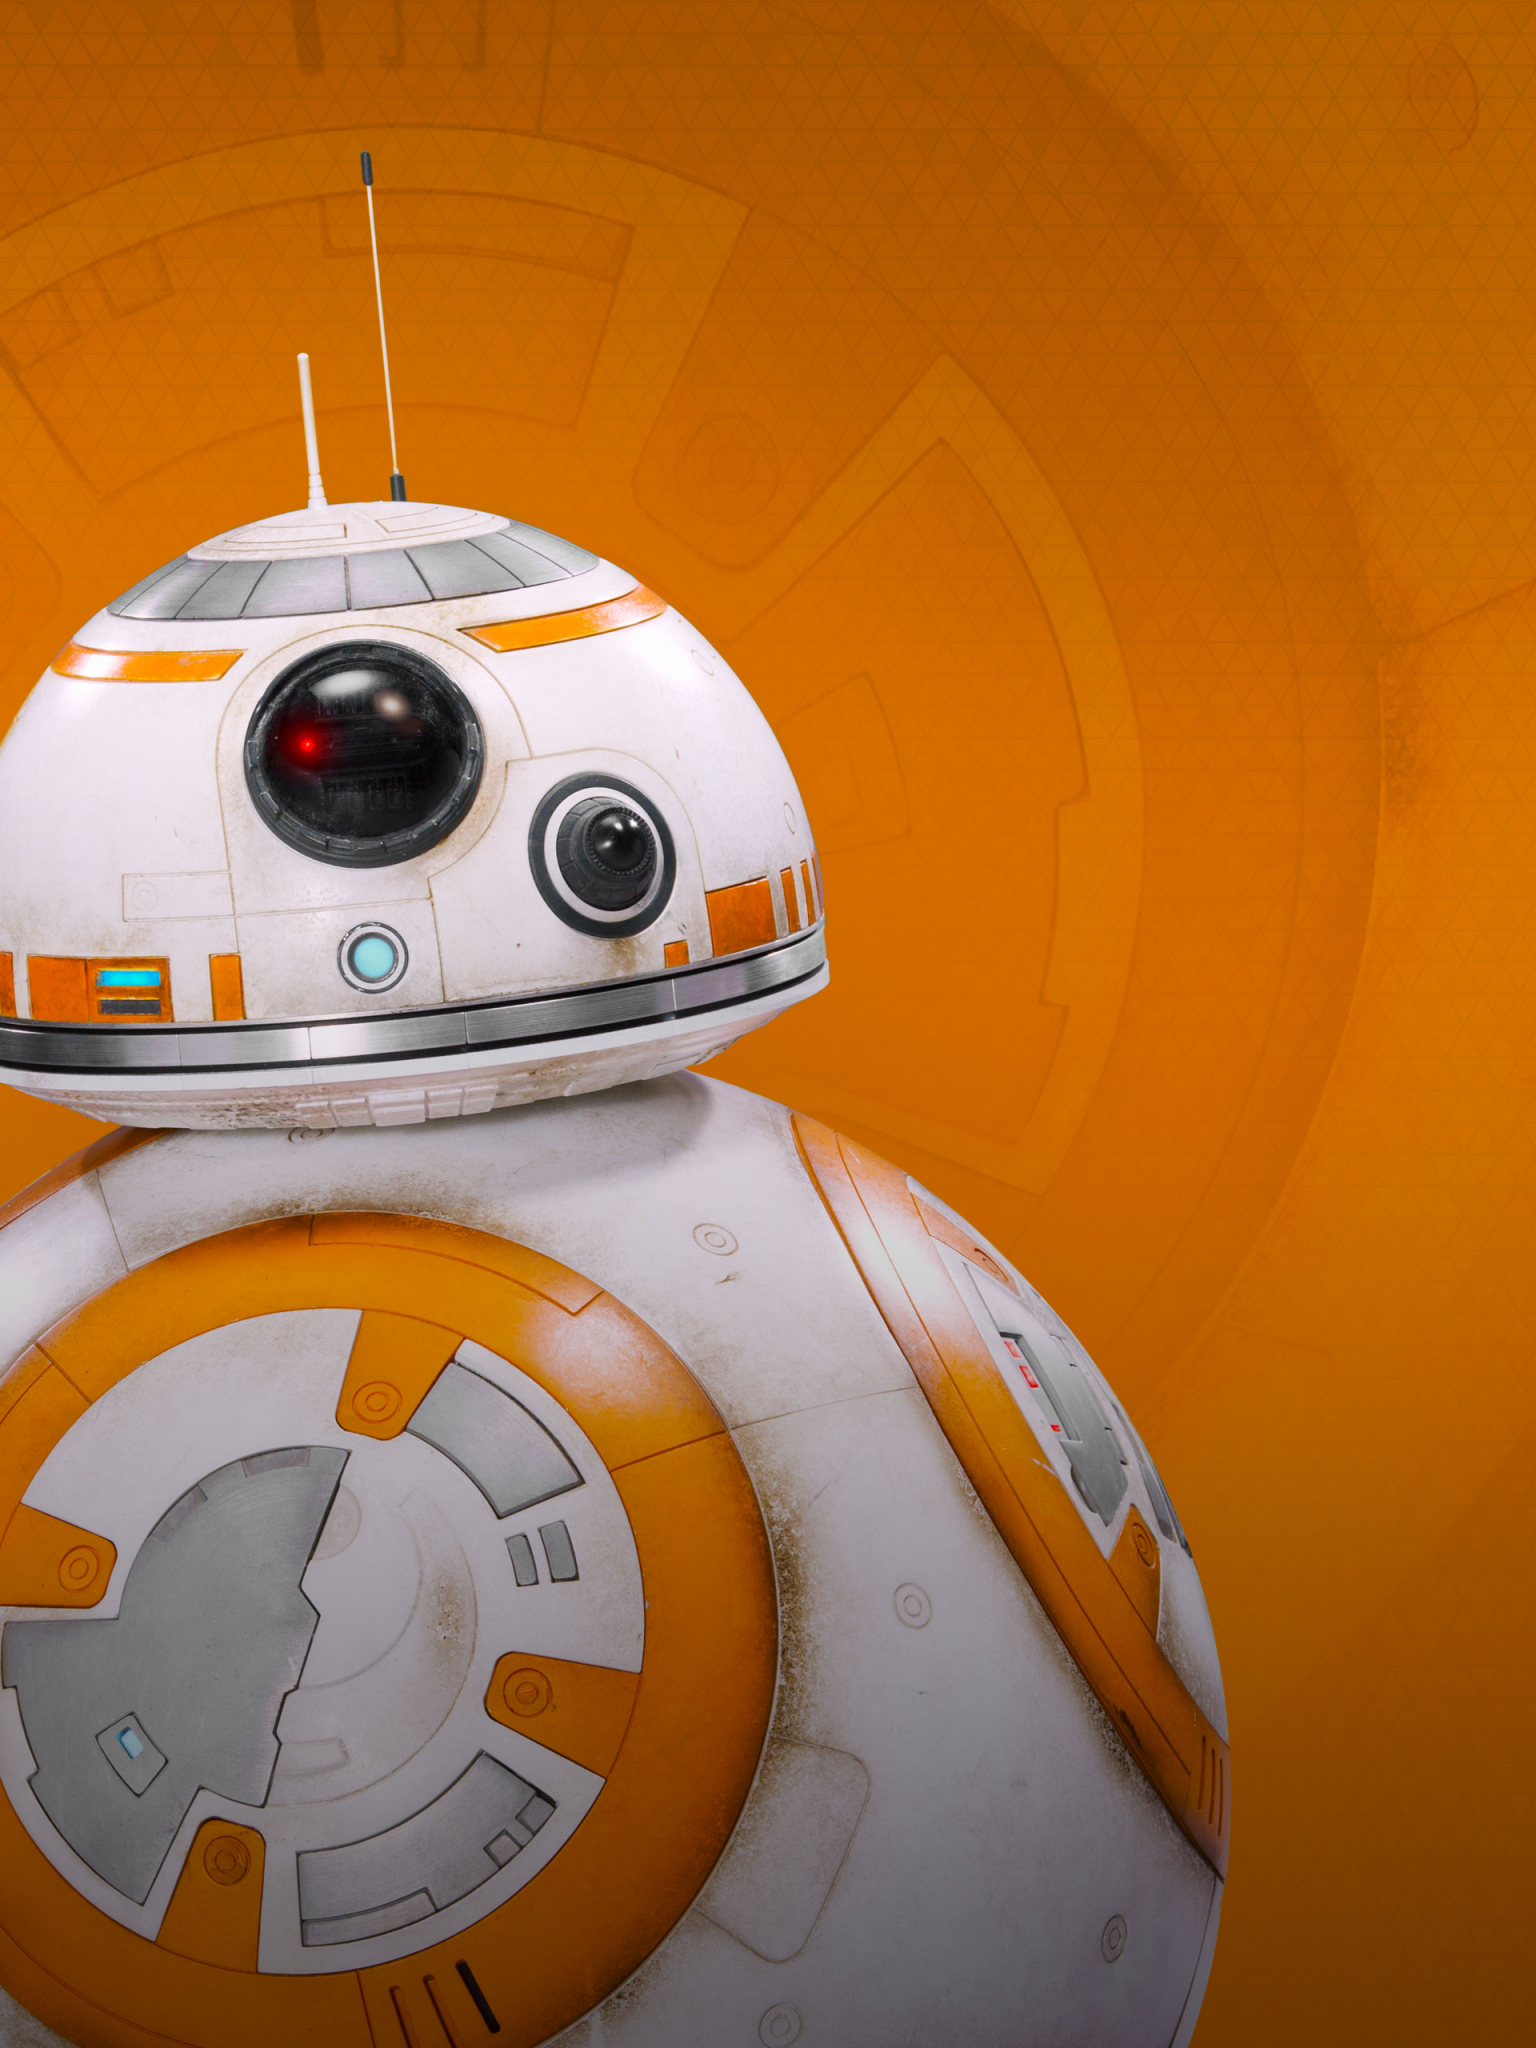 Free Download Star Wars The Force Awakens Wallpaper 2880x2560 For Your Desktop Mobile Tablet Explore 39 Bb 8 Star Wars Wallpapers Bb 8 Star Wars Wallpapers Star Wars Bb 8 Wallpaper Bb 8 Wallpaper